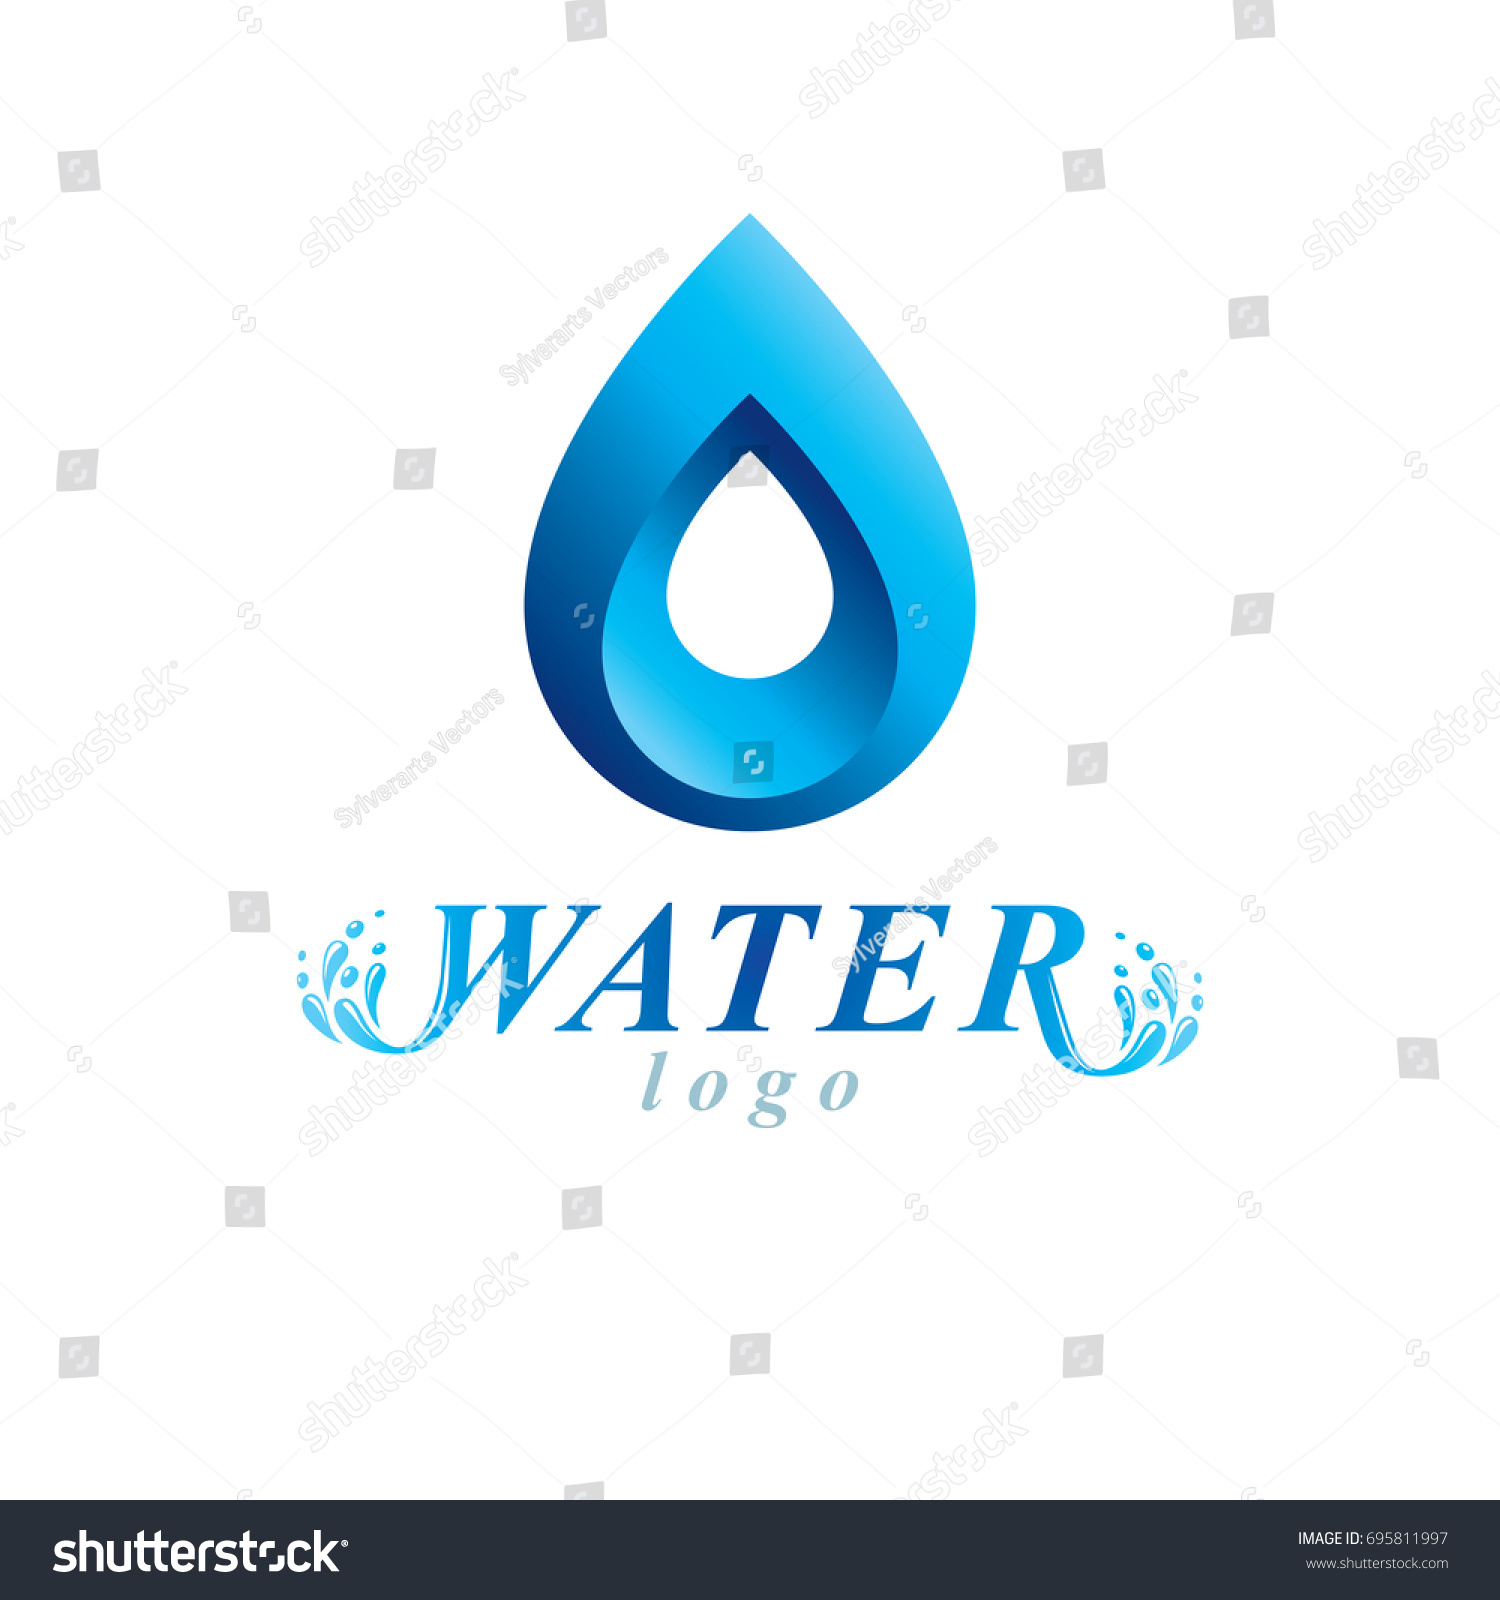 Ocean freshness theme vector symbol use stock vector 695811997 ocean freshness theme vector symbol for use in spa and resort organizations mineral water advertising biocorpaavc Gallery